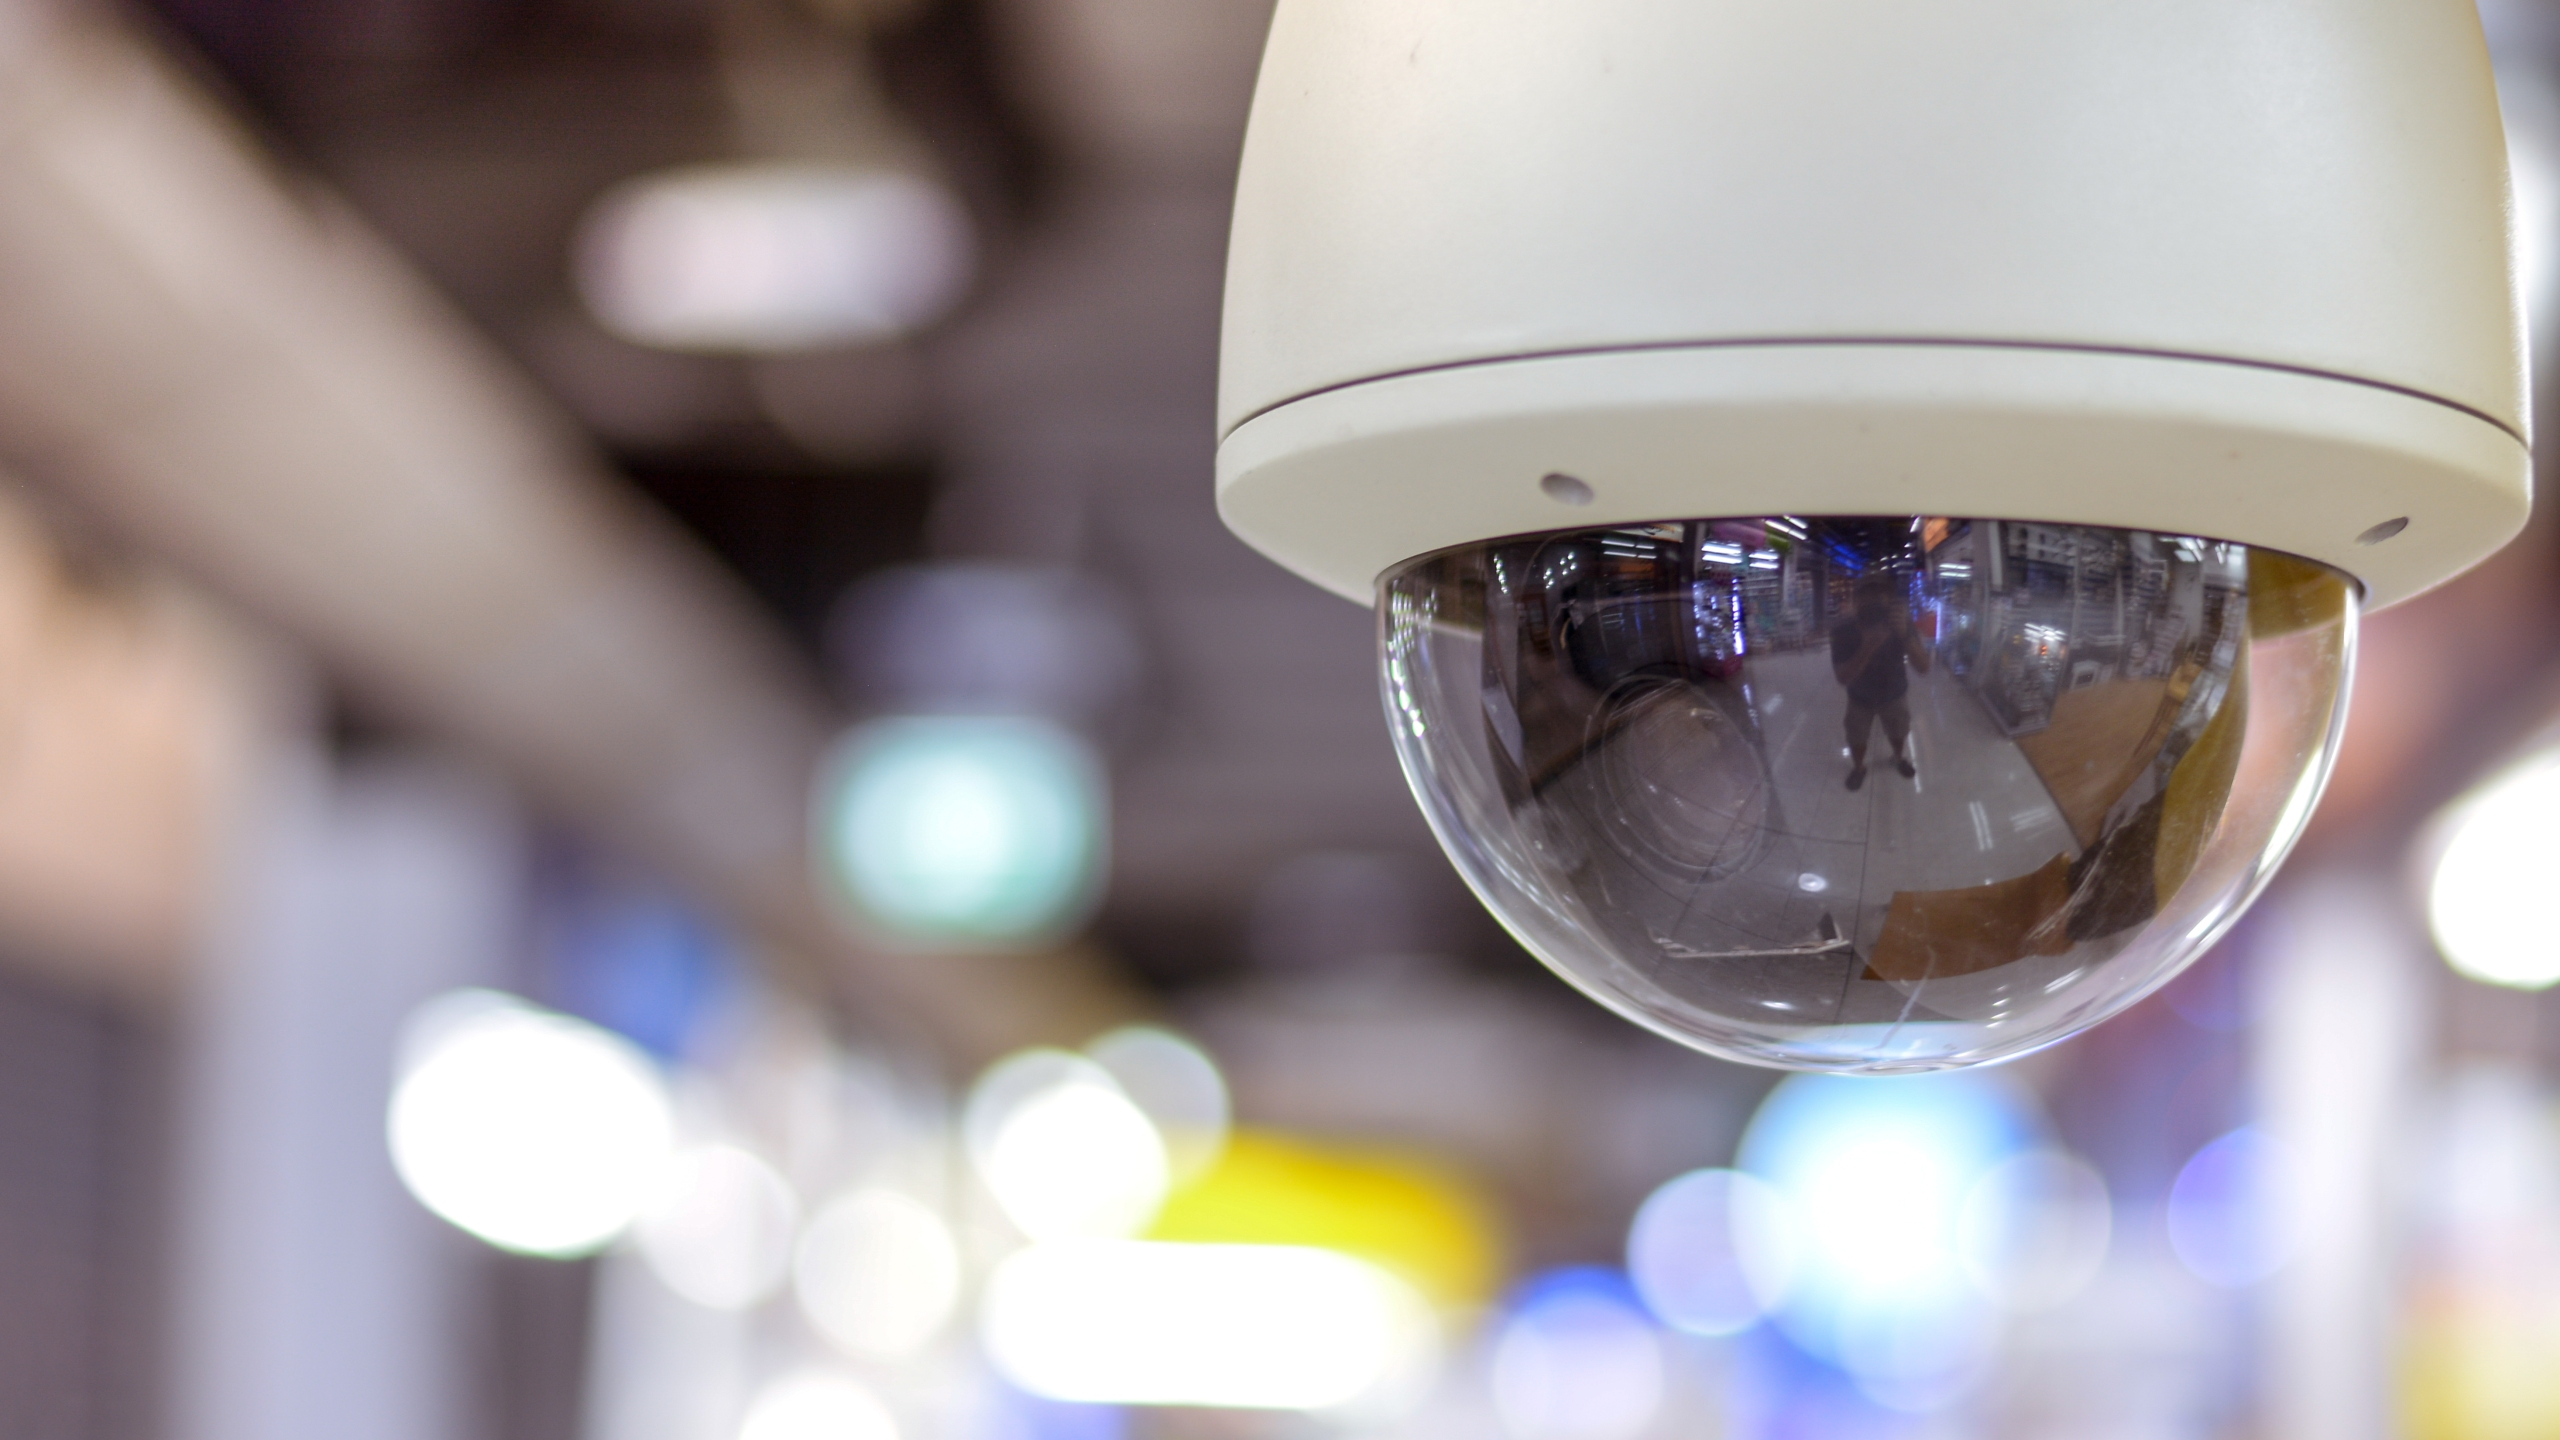 A CCTV camera is seen in a file photo. (Getty Images)